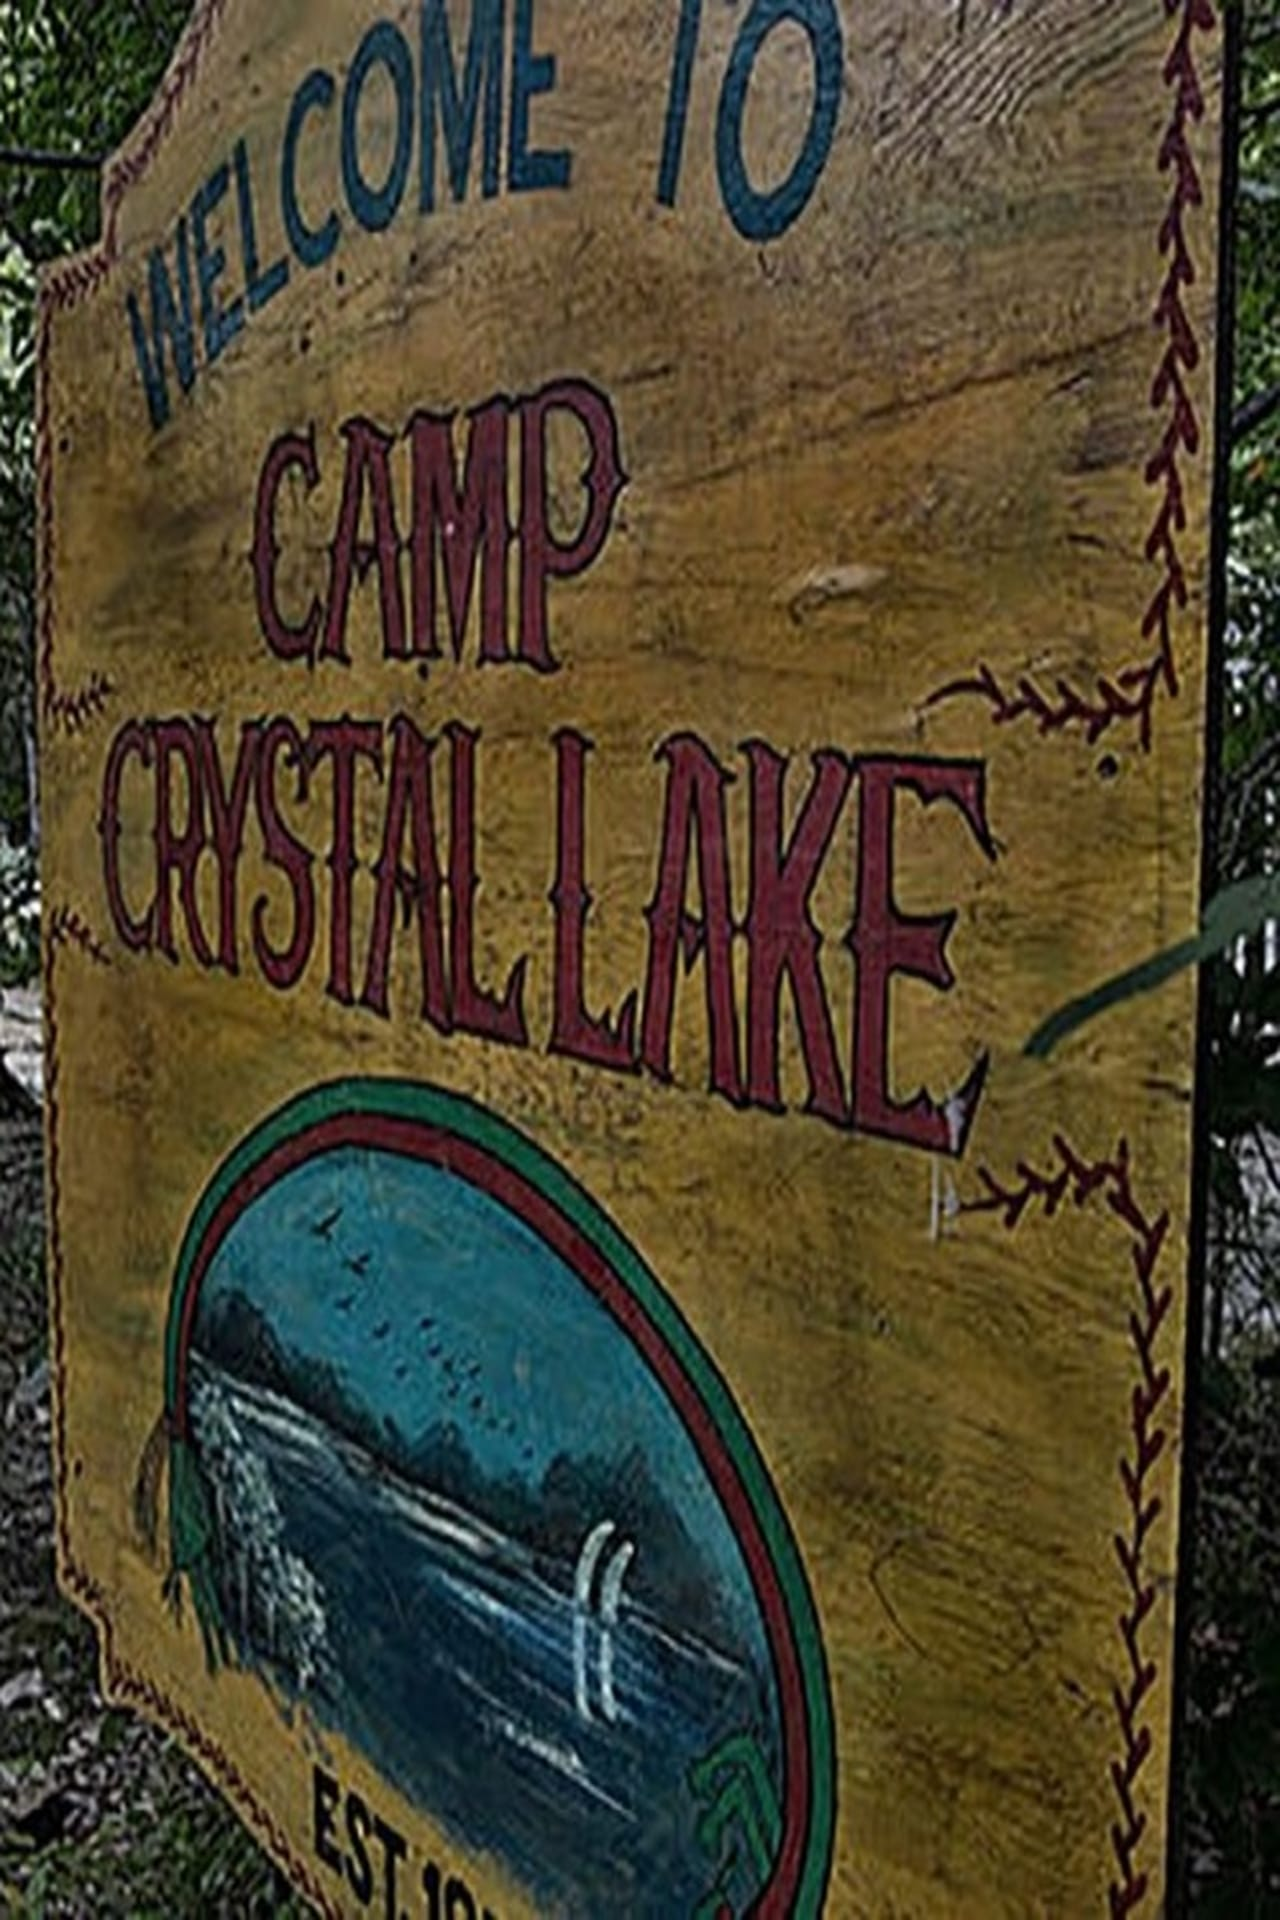 Return to Crystal Lake: Making Friday the 13th